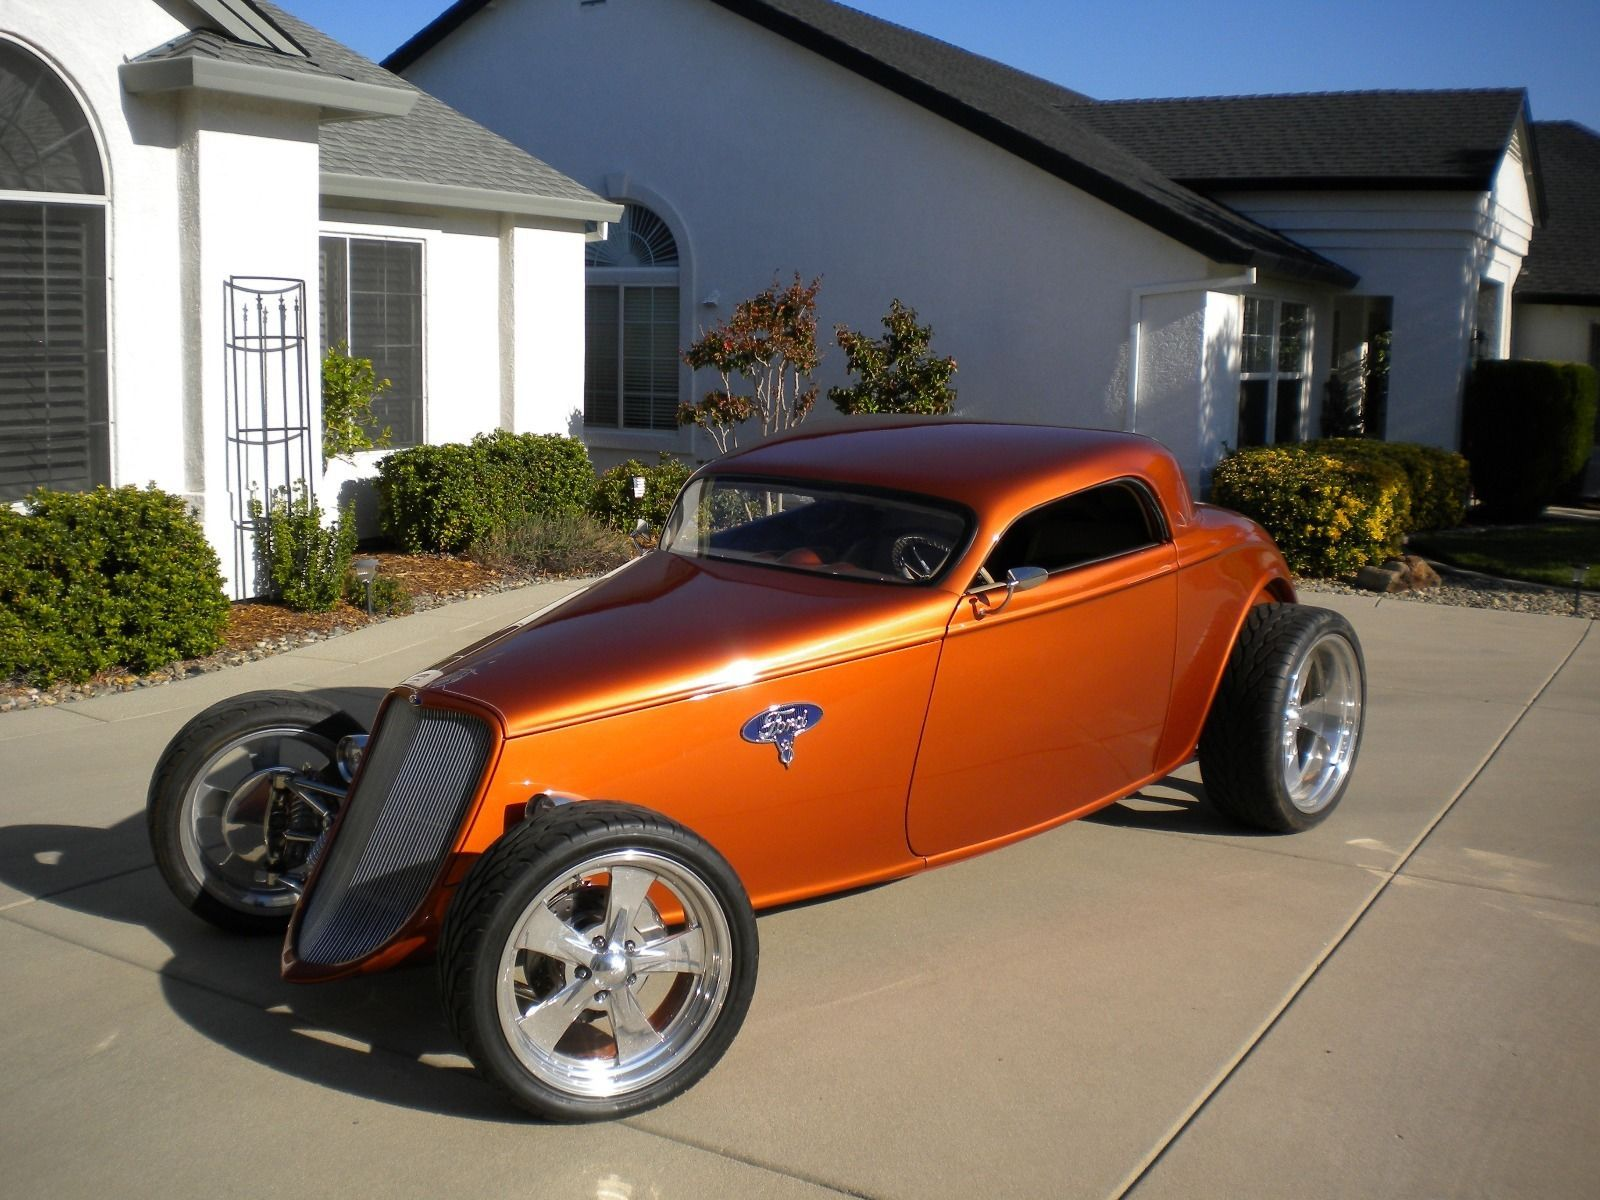 1933 Ford Speedstar Coupe Hot Rod | Replica cars for sale ...